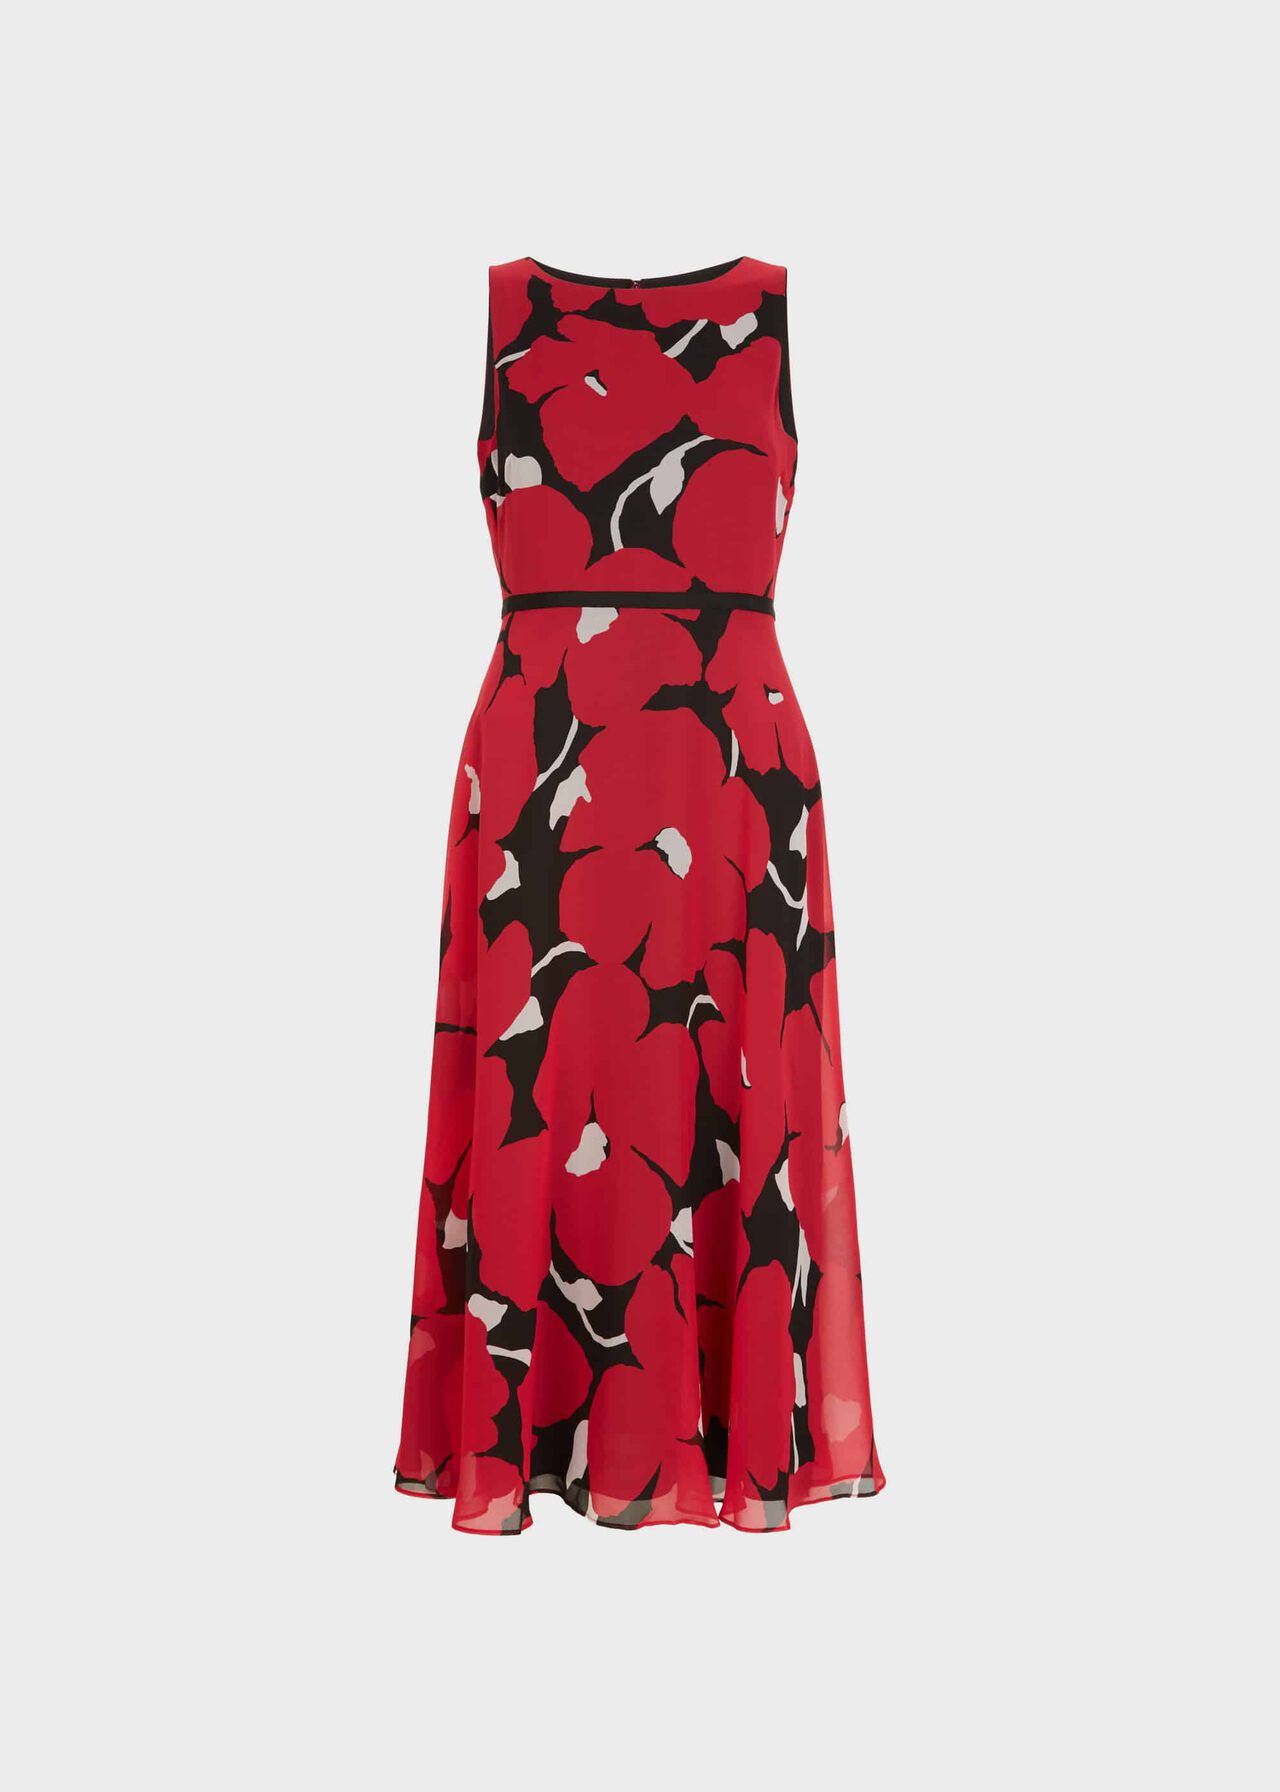 Carly Floral Midi Dress Black Pink